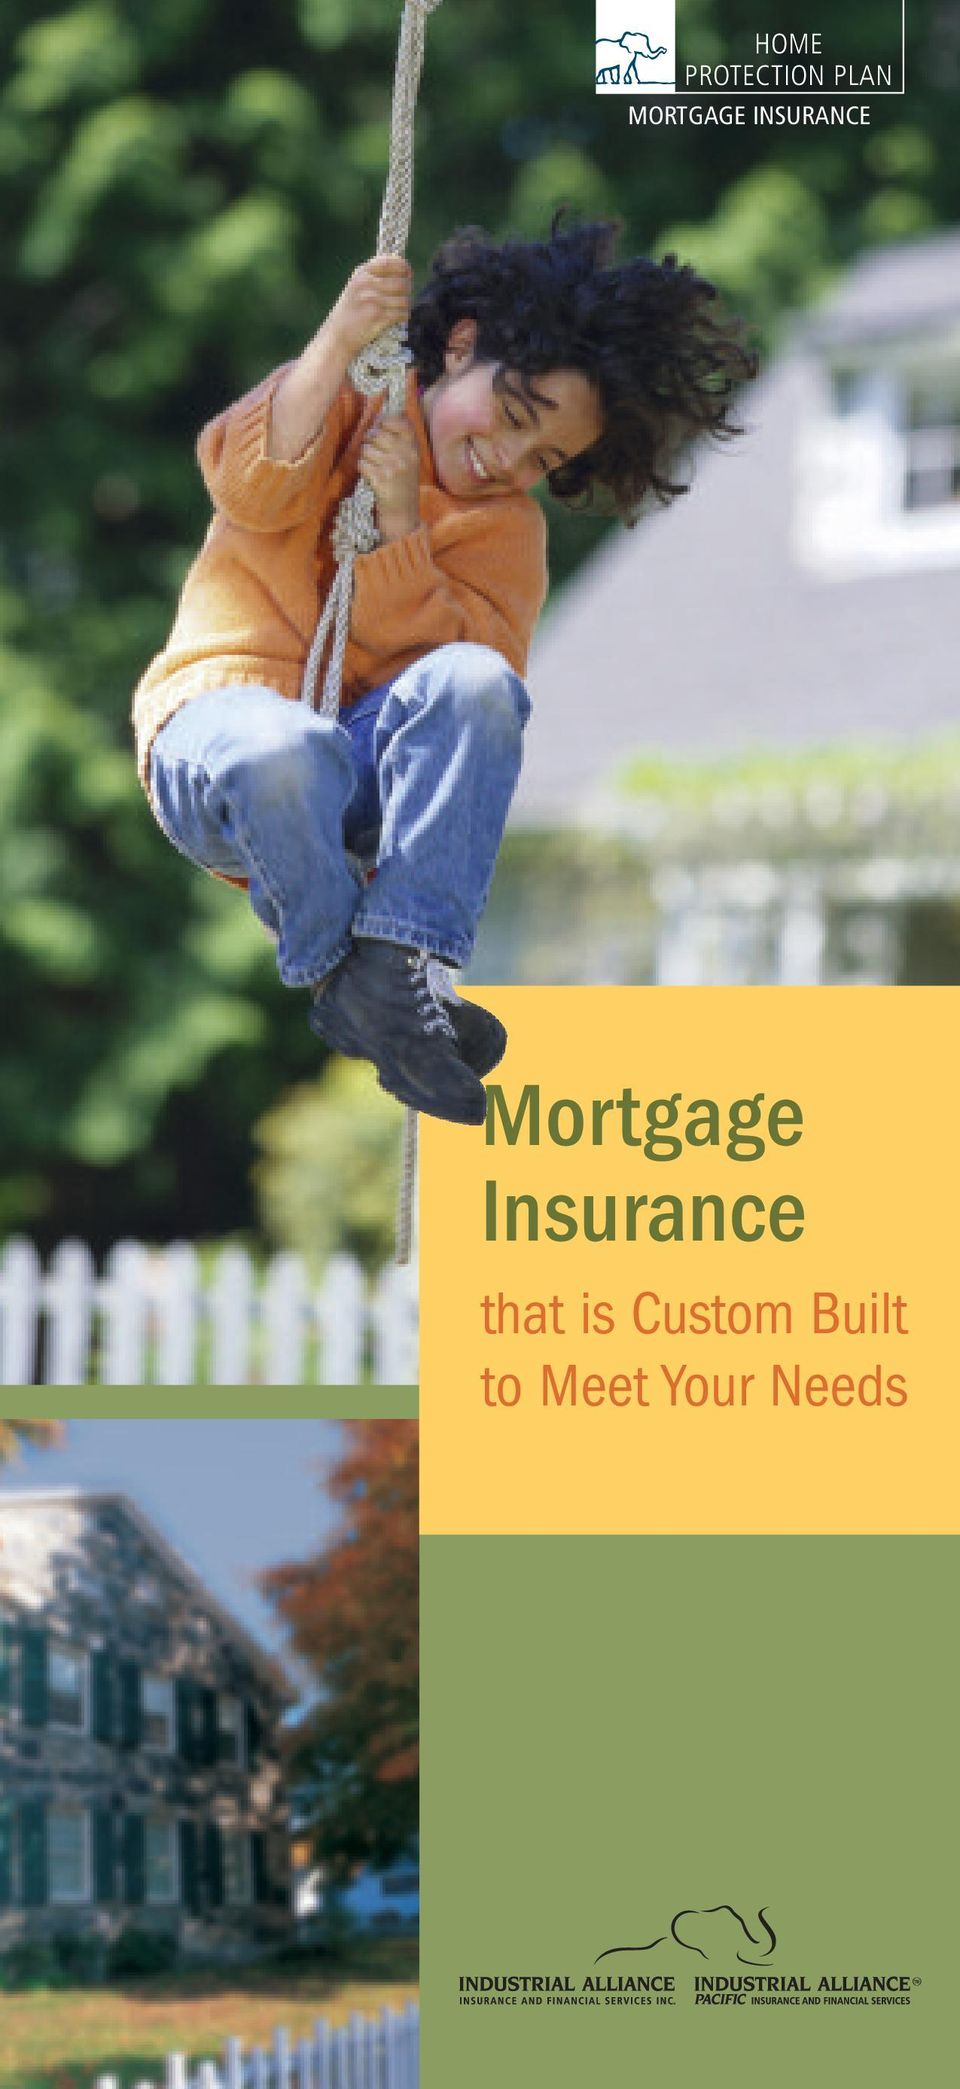 Mortgage Insurance that